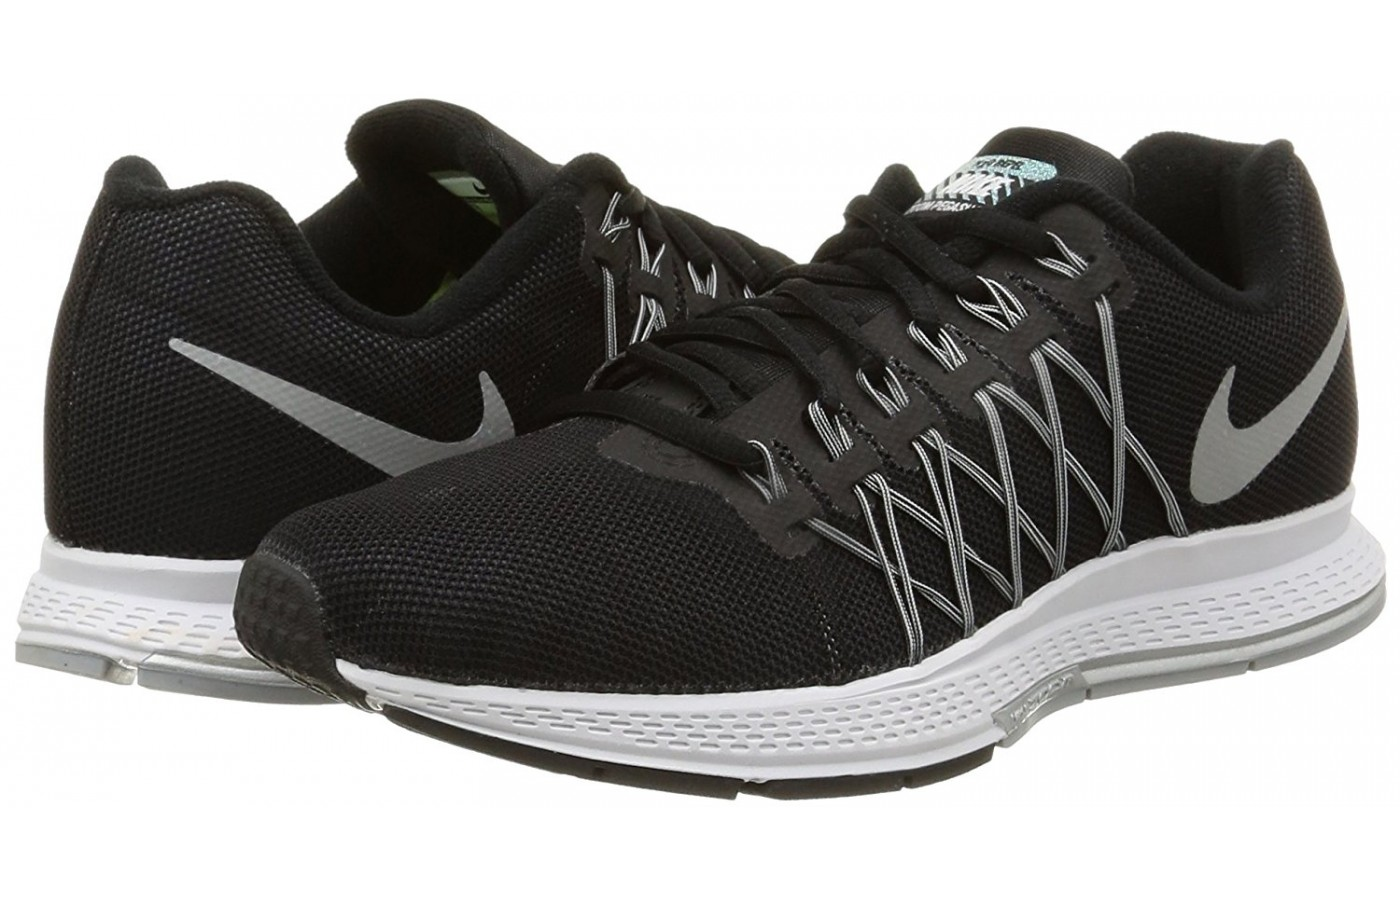 best service 40197 6b33c Nike Zoom Pegasus 32 Reviewed & Tested in 2019 | WalkJogRun